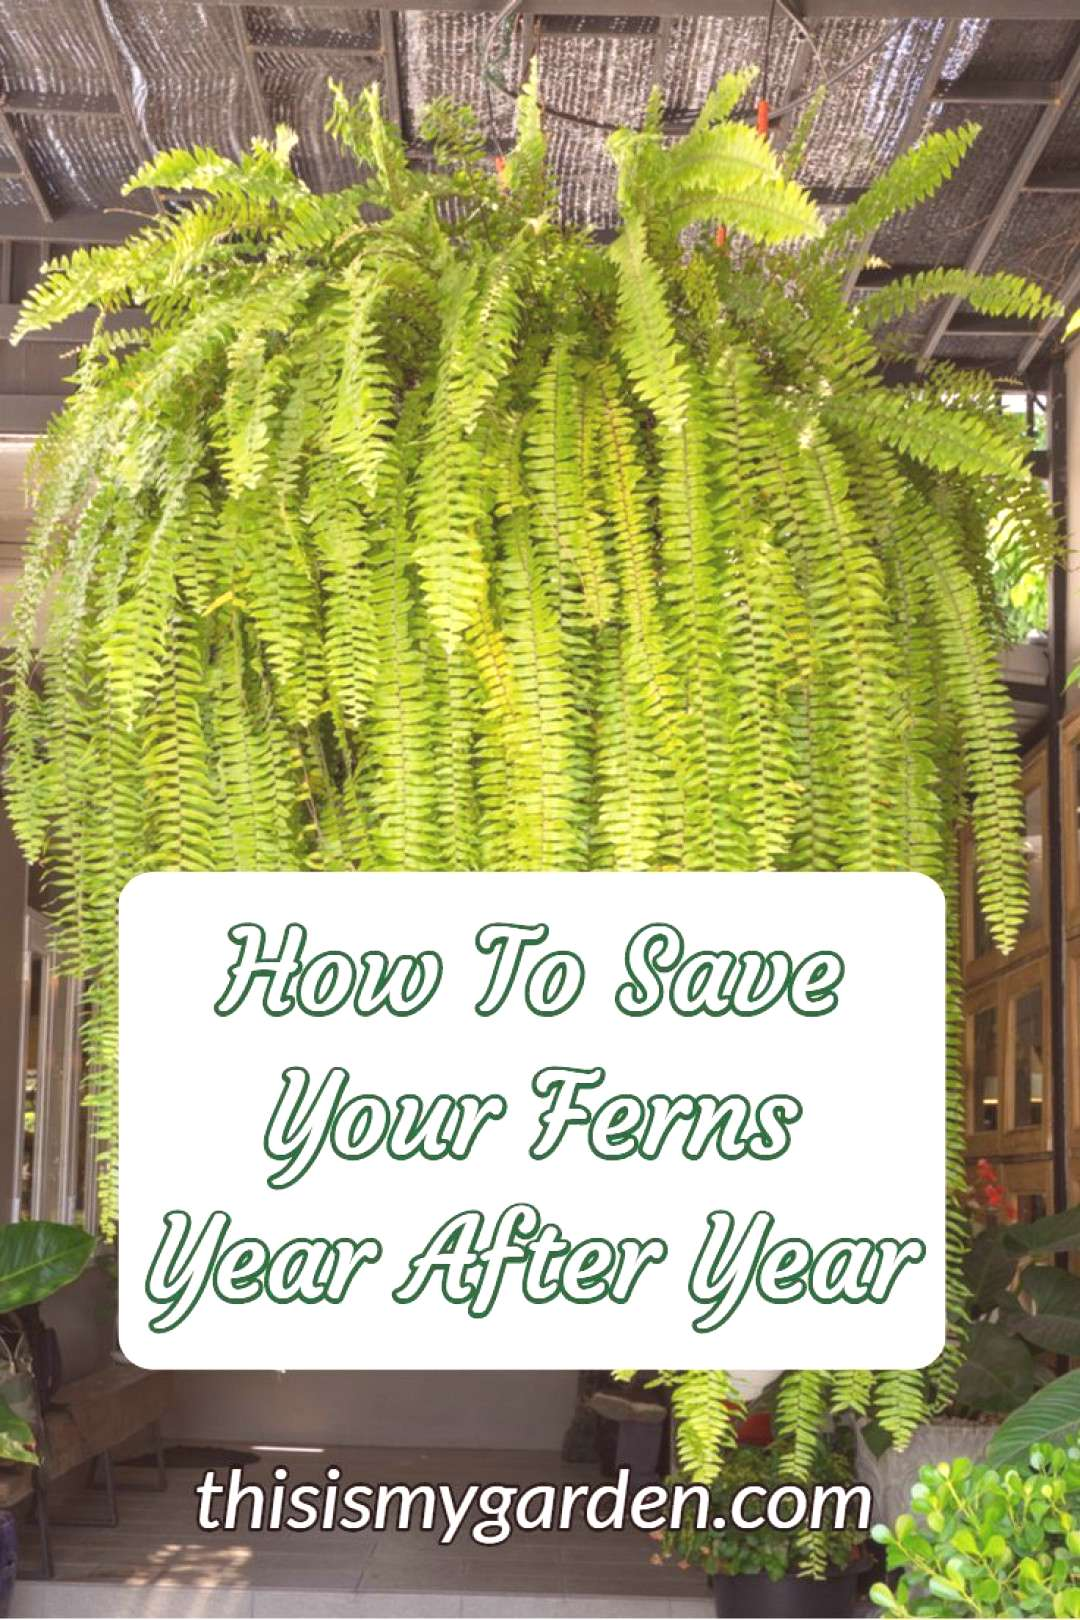 Potted Ferns Front Porches | Potted Ferns Front Porches potted ferns front porches amp potted ferns f